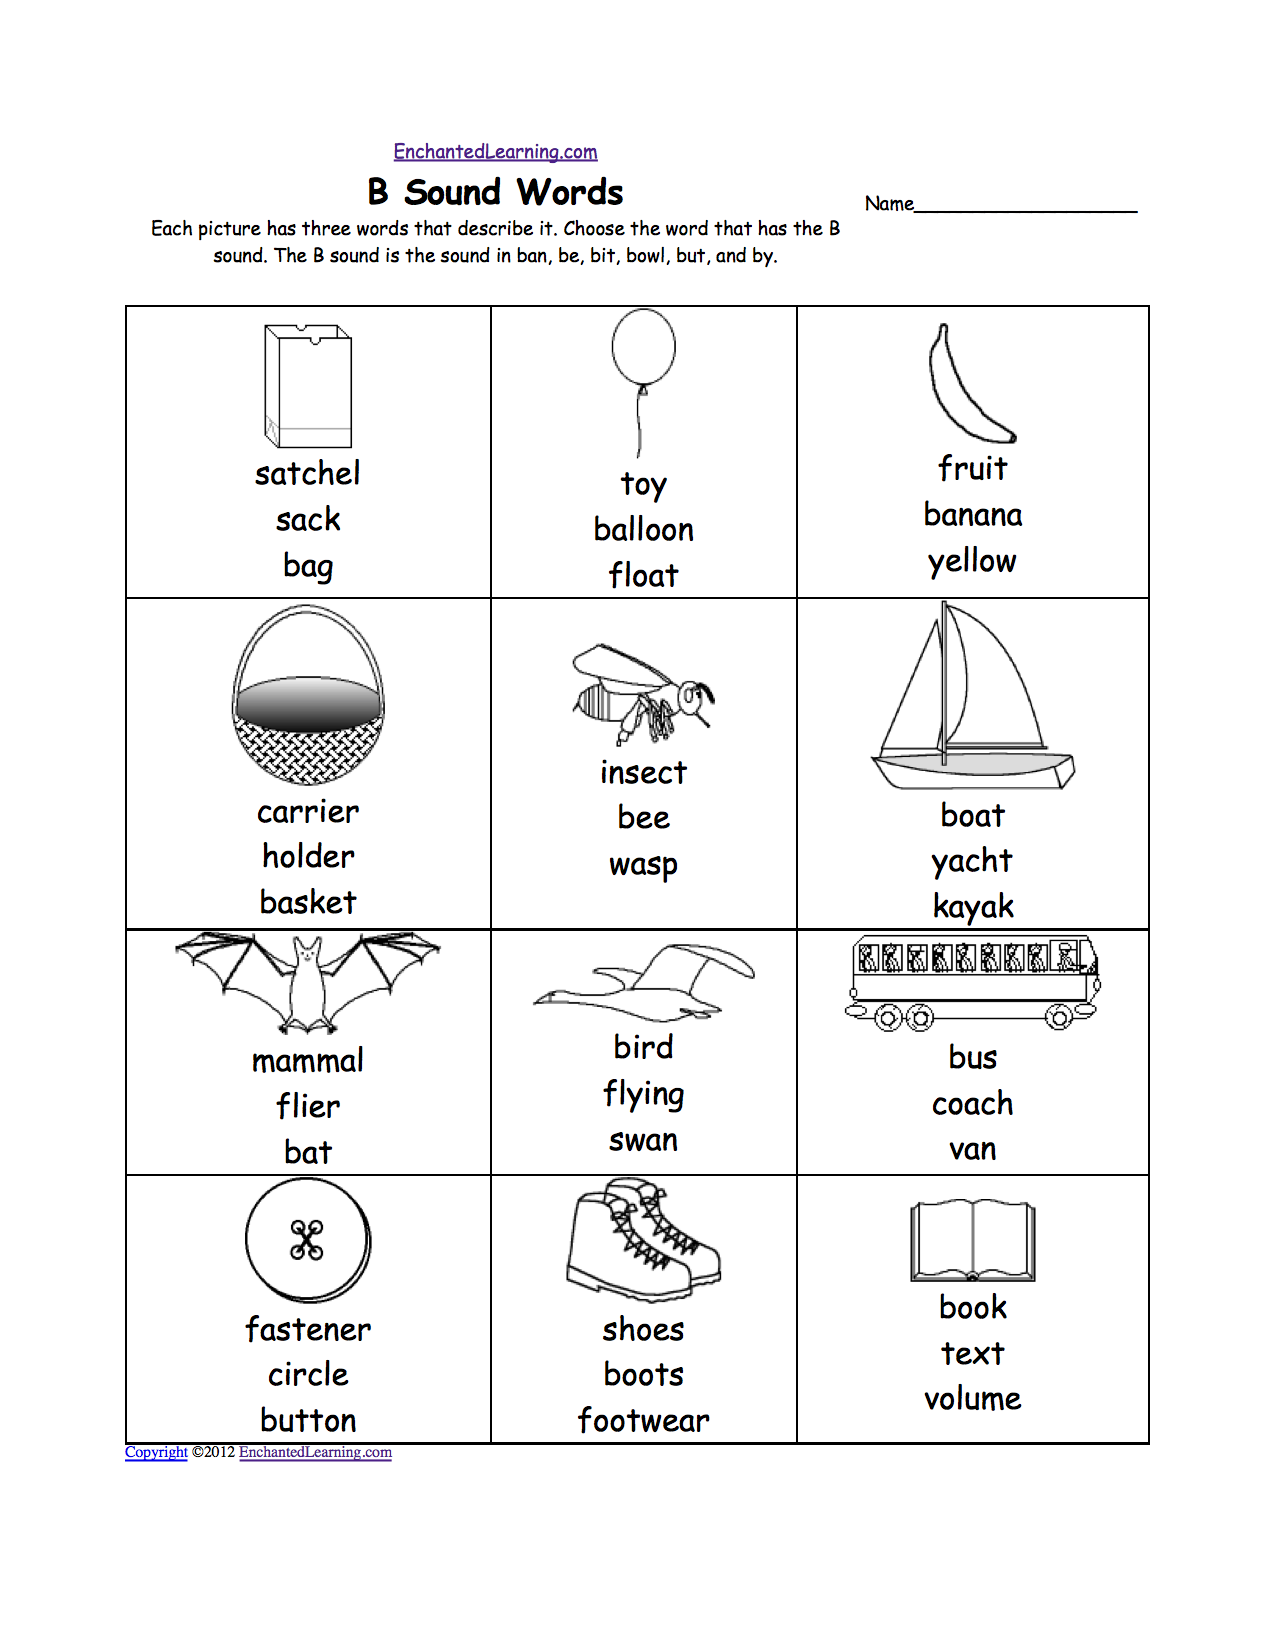 Weirdmailus  Remarkable Phonics Worksheets Multiple Choice Worksheets To Print  With Goodlooking Quotbquot Sound Phonics Worksheet Multiple Choice Each Picture Has Three Words That Describe It Choose The Word That Has A Quotbquot Sound The Quotbquot Sound Is The Sound  With Enchanting Worksheets On Pronouns For Grade  Also Seven Times Tables Worksheet In Addition Decimal Squares Worksheets And Math Calculation Worksheets As Well As Free Printable Antonym Worksheets Additionally Adjectives For Nd Grade Worksheets From Enchantedlearningcom With Weirdmailus  Goodlooking Phonics Worksheets Multiple Choice Worksheets To Print  With Enchanting Quotbquot Sound Phonics Worksheet Multiple Choice Each Picture Has Three Words That Describe It Choose The Word That Has A Quotbquot Sound The Quotbquot Sound Is The Sound  And Remarkable Worksheets On Pronouns For Grade  Also Seven Times Tables Worksheet In Addition Decimal Squares Worksheets From Enchantedlearningcom